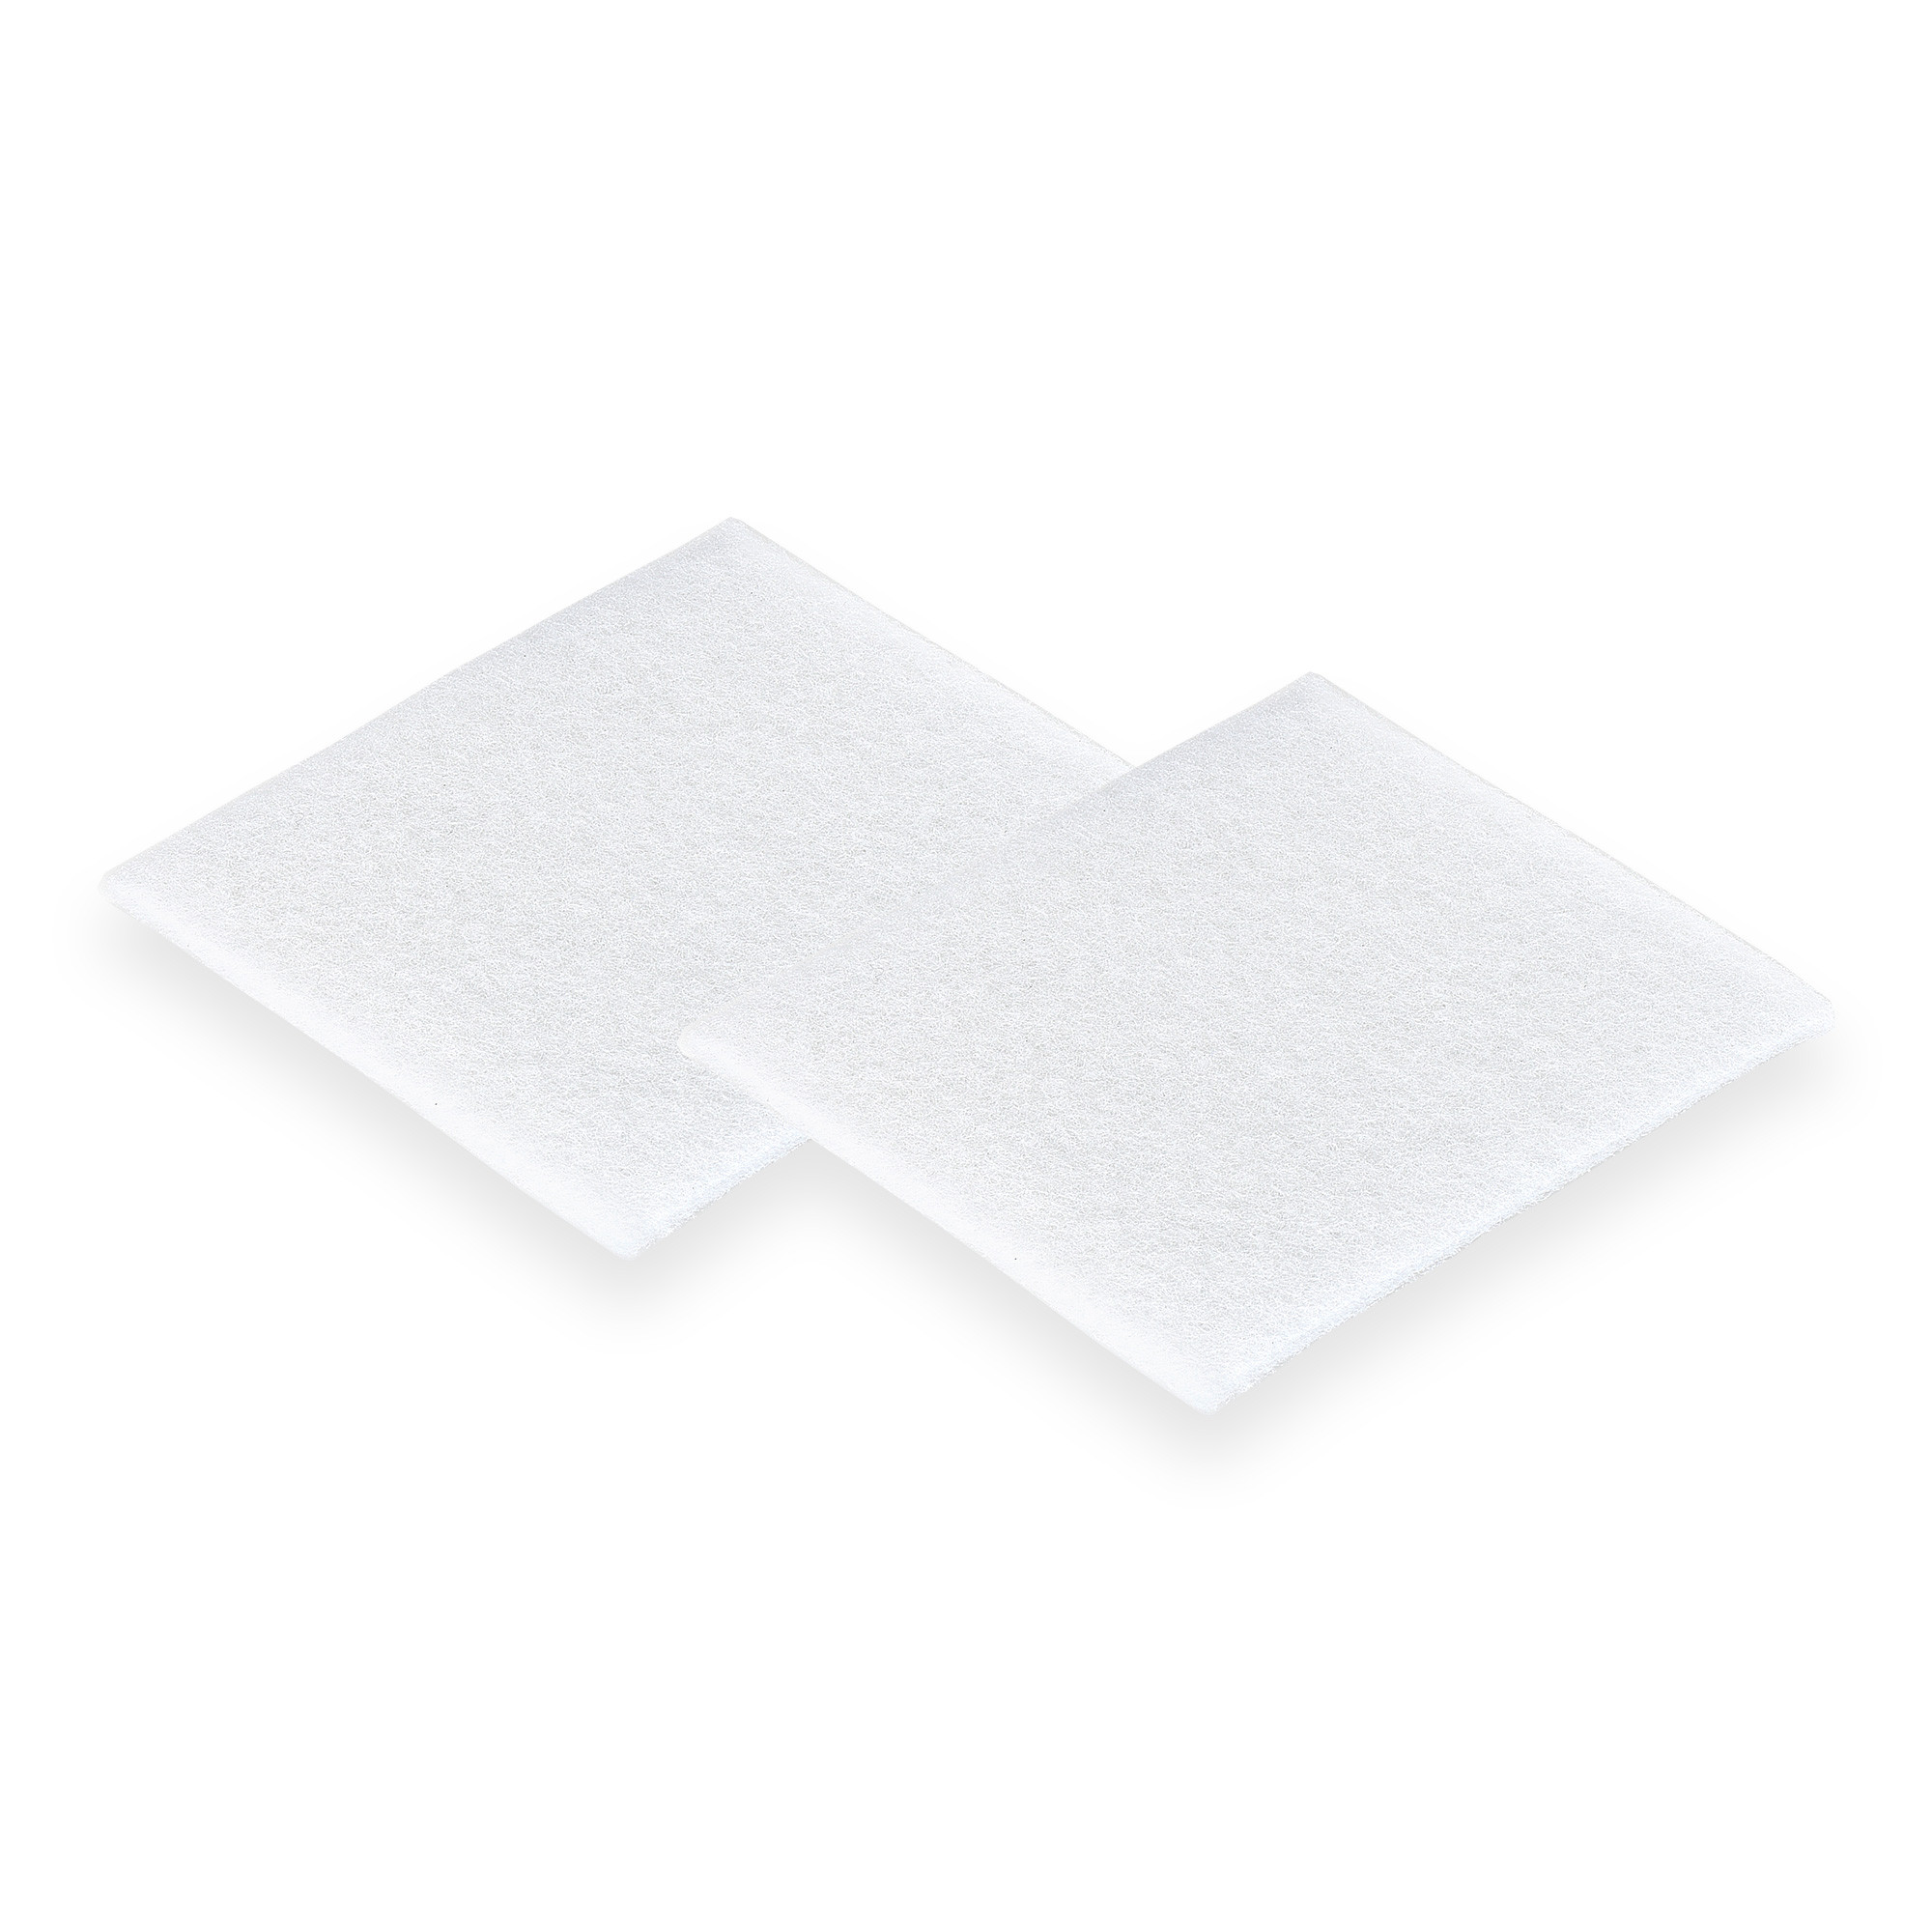 Vax Mach 1 Filter Pack